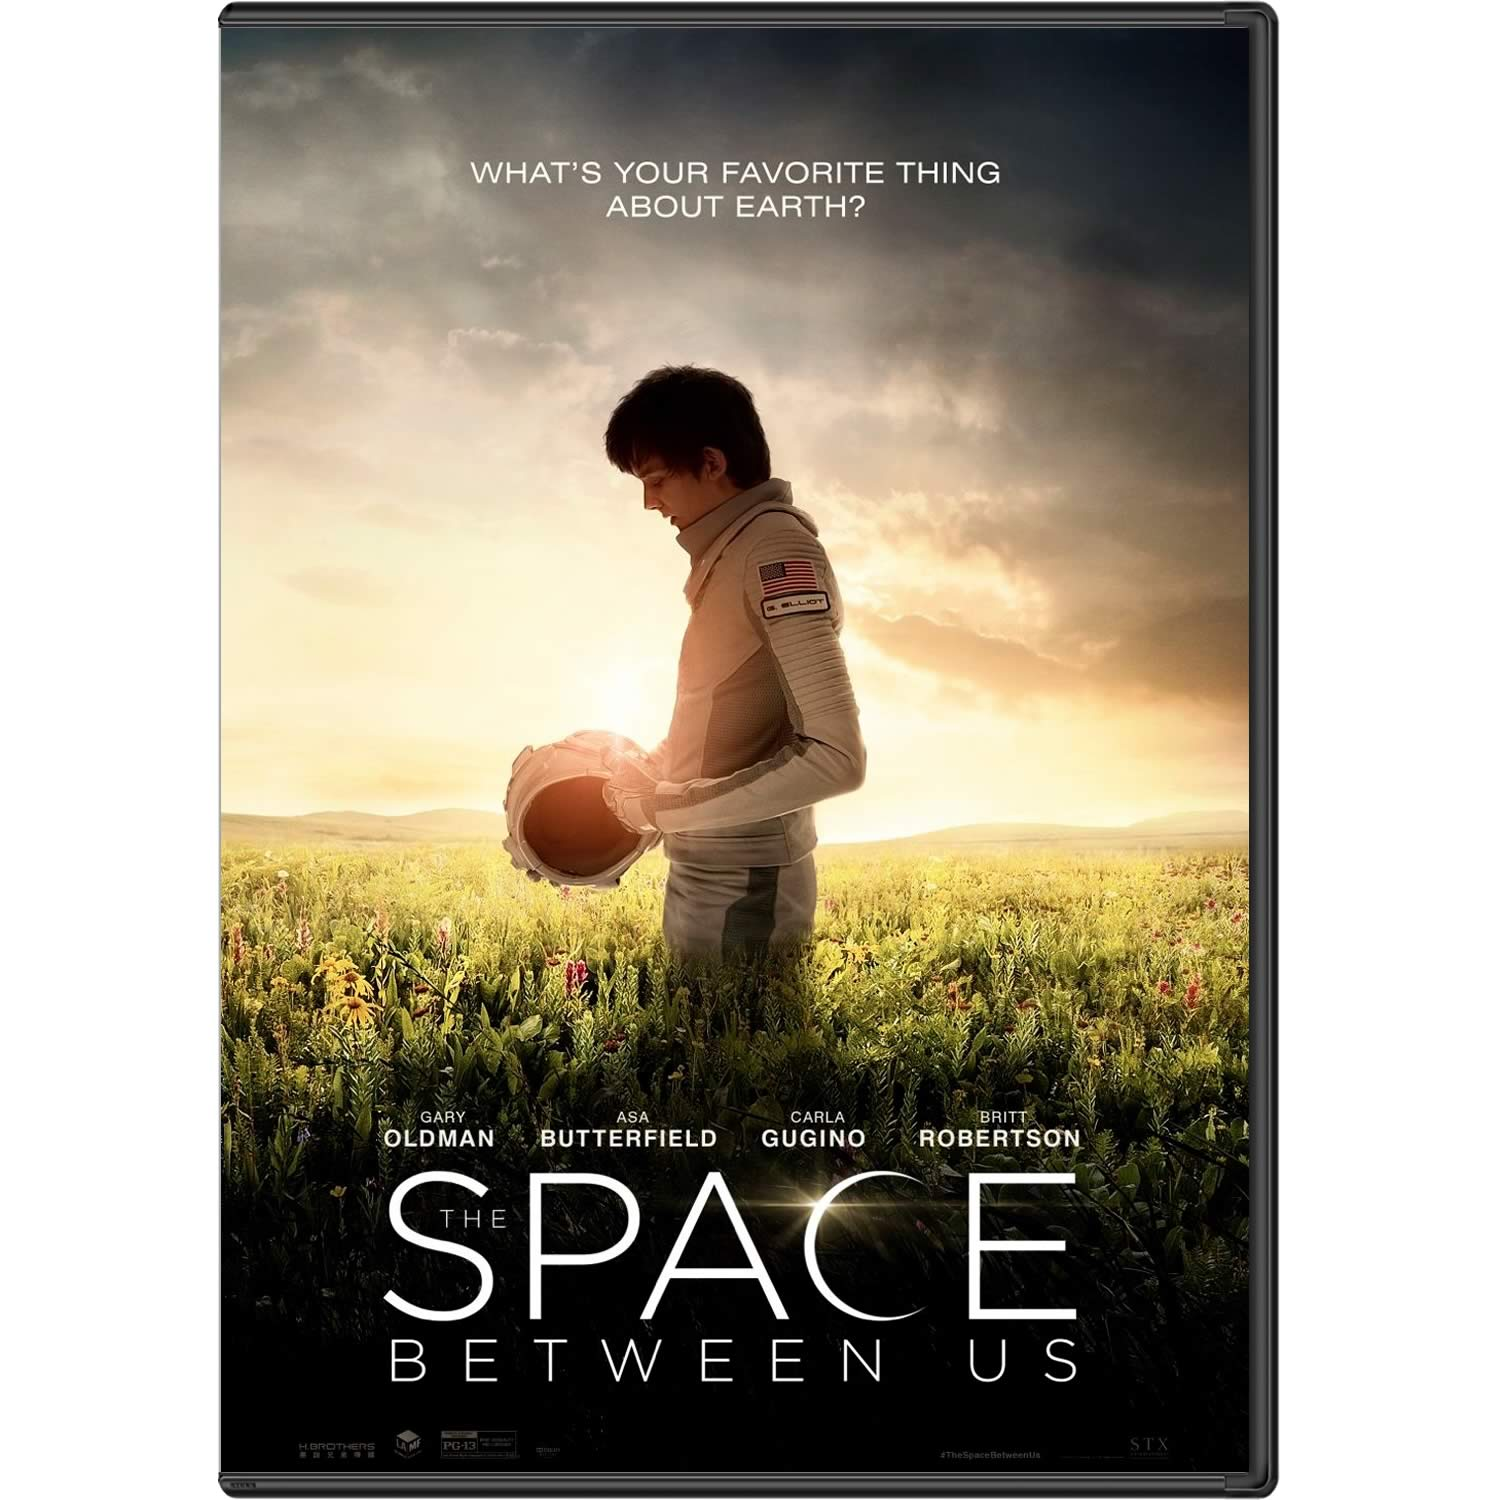 THE SPACE BETWEEN US - ΤΟ ΔΙΑΣΤΗΜΑ ΑΝΑΜΕΣΑ ΜΑΣ (DVD)